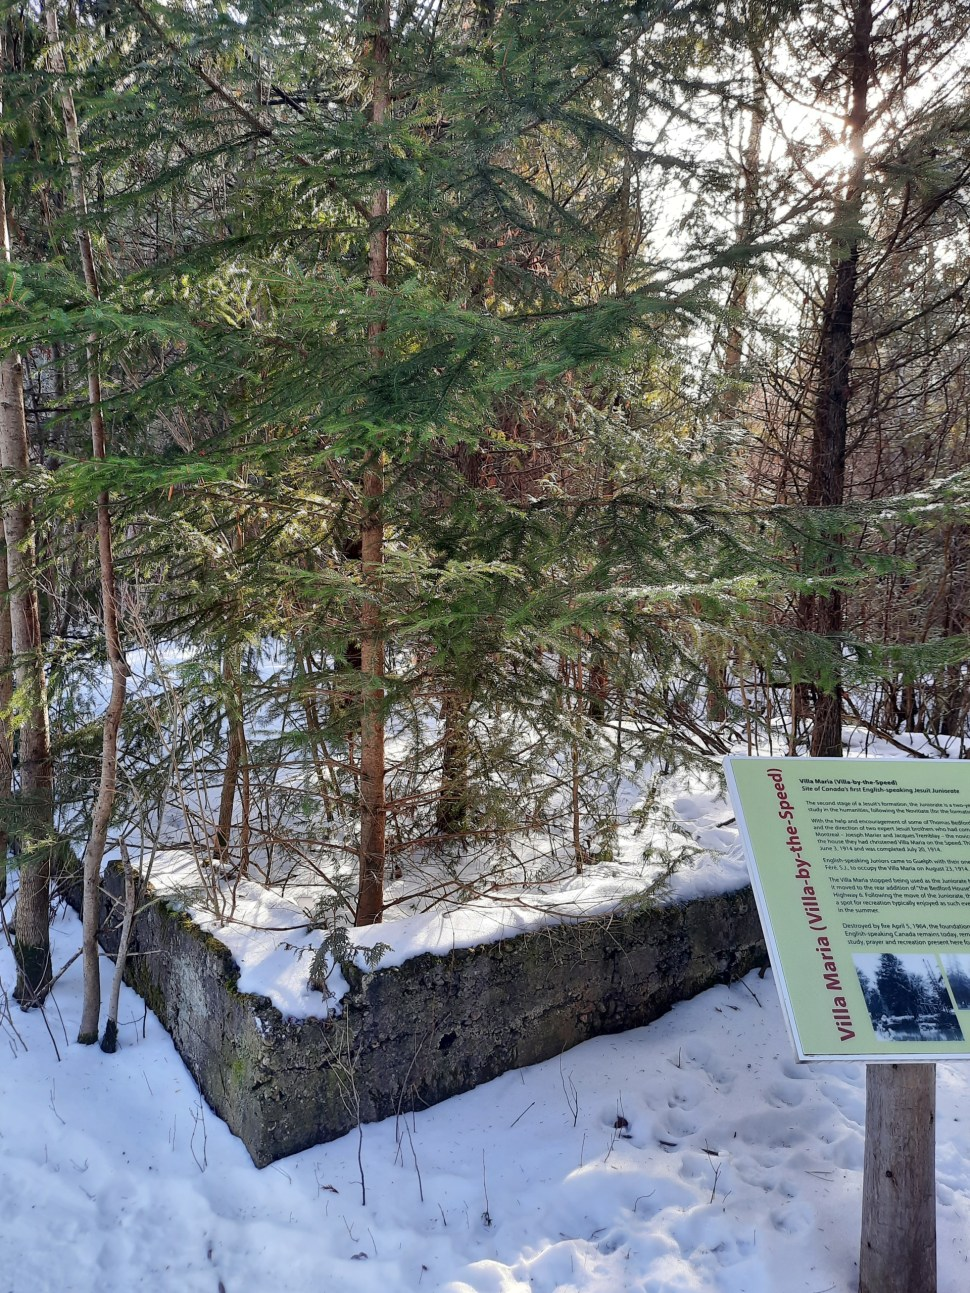 Trees growing from a layer of concrete, with snow on the ground. Part of an information board telling the history of the Villa-by-the-Speed is shown in the right foreground